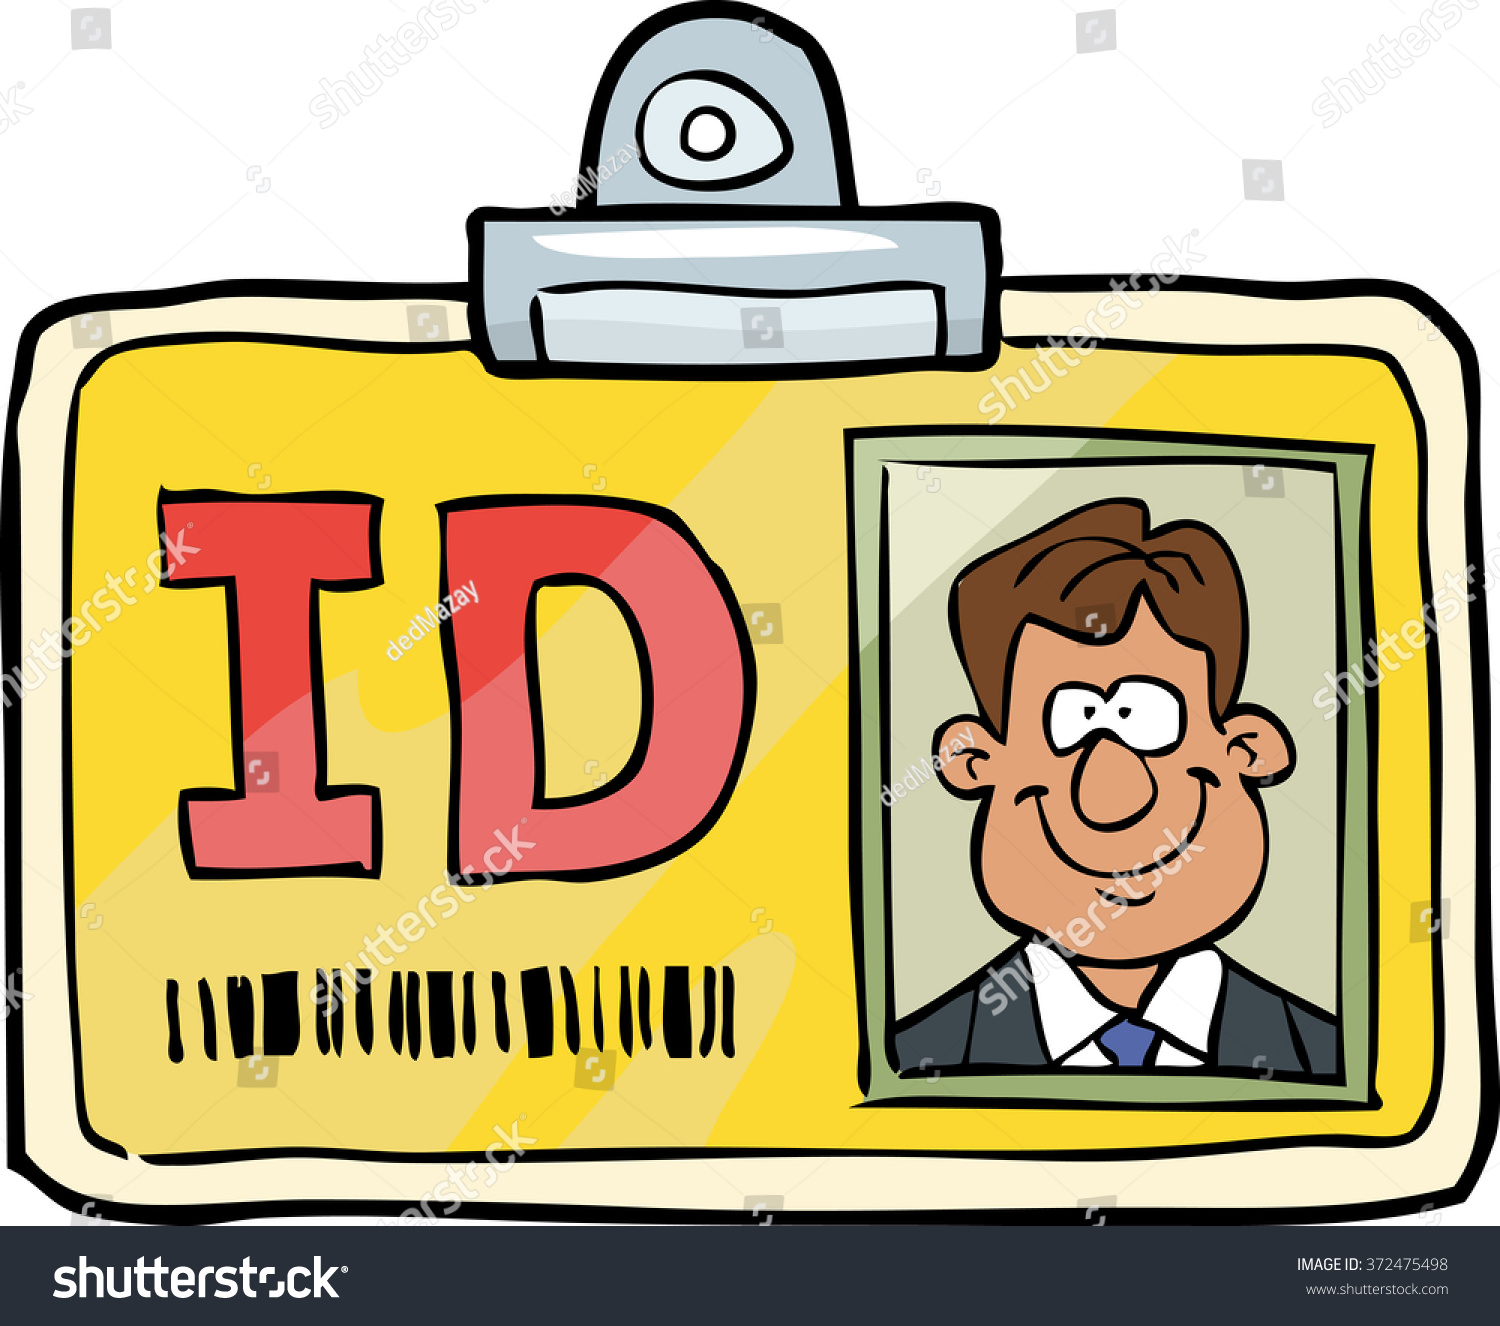 Image result for id card cartoon